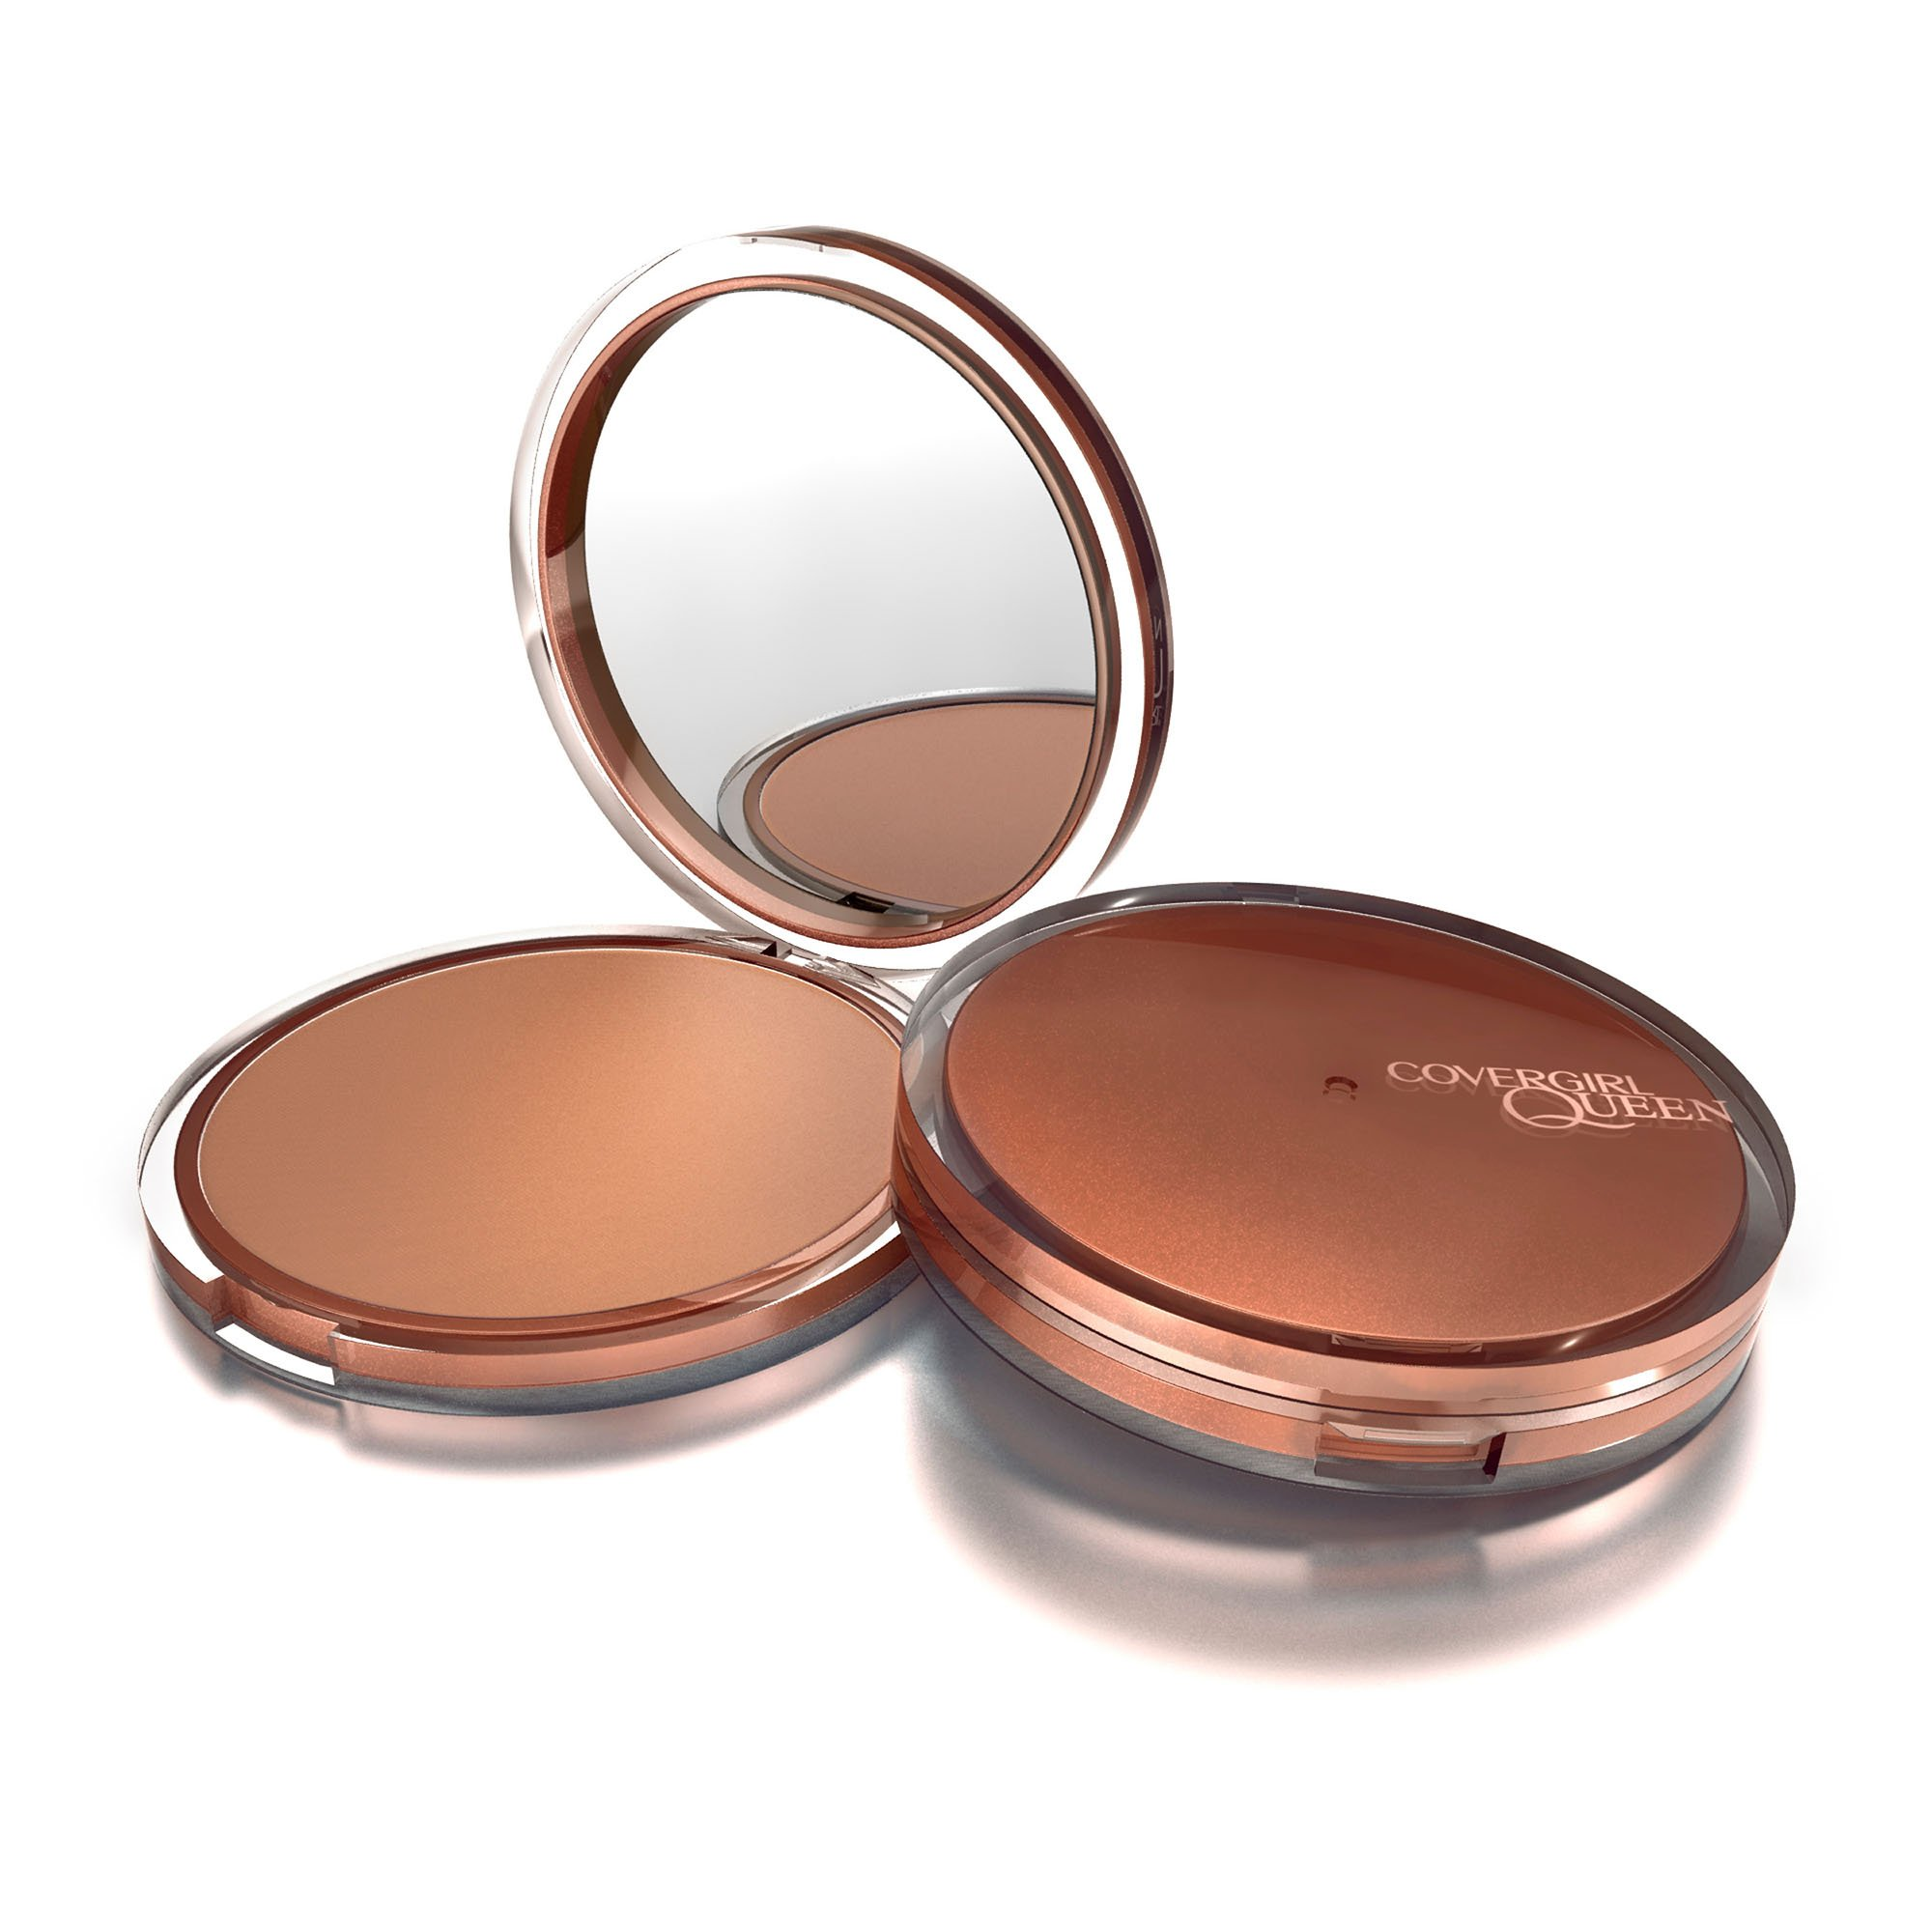 COVERGIRL Queen Natural Hue Mineral Bronzer Light Bronze.39 oz (packaging may vary)